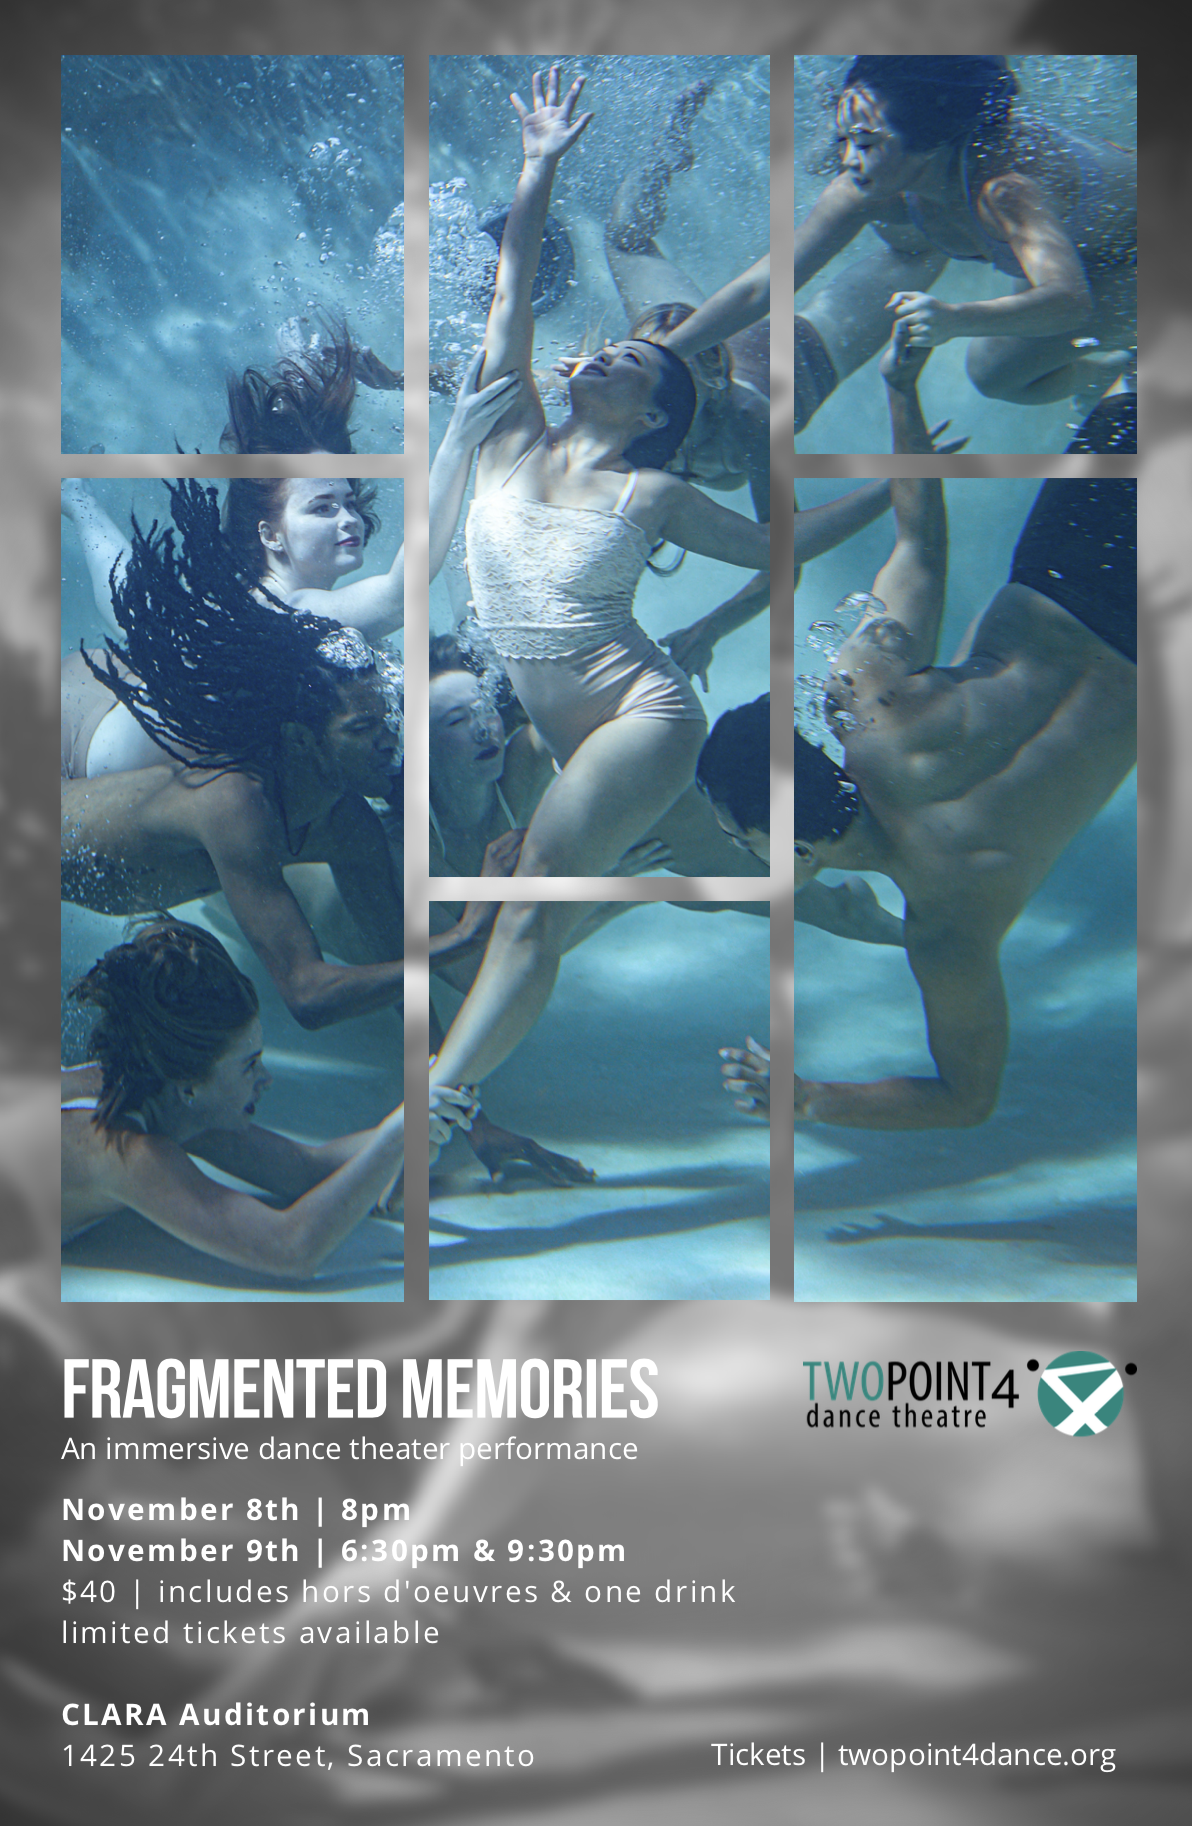 Fragmented Memories - Join us for an immersive dance theater performance!